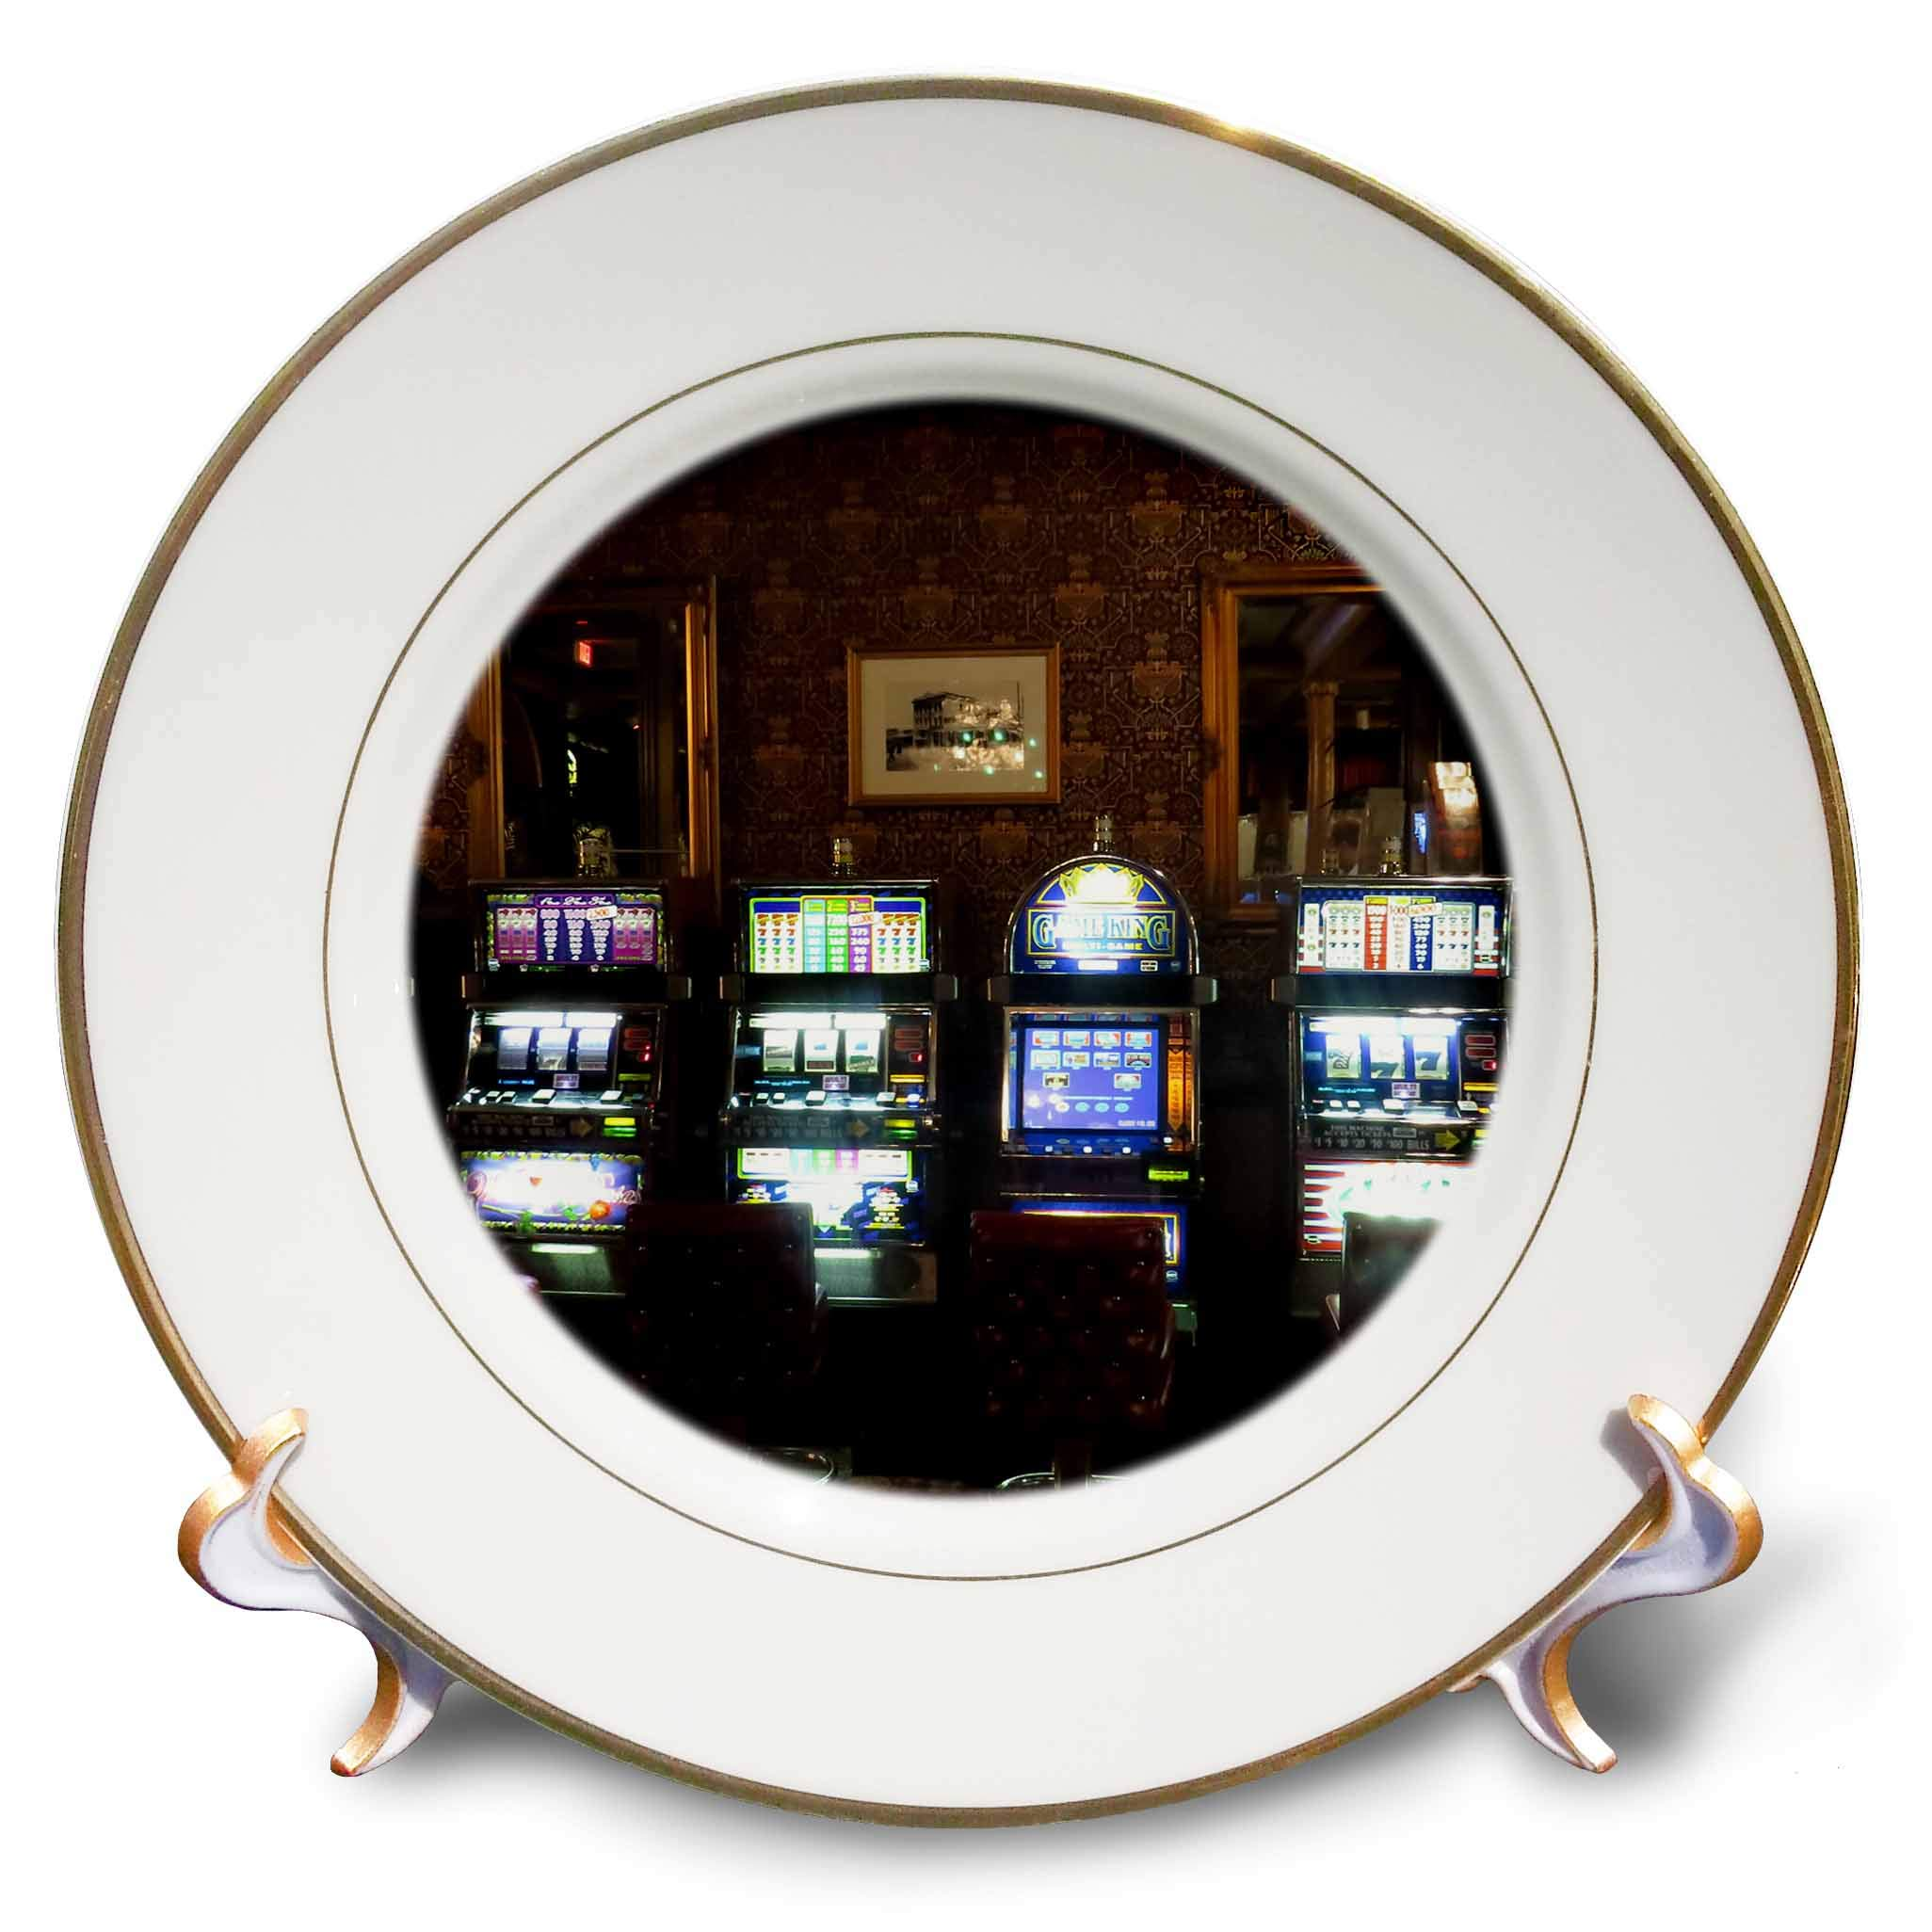 3dRose Jos Fauxtographee- Mizpah Casino - A Casino Inside The First Floor at The Mizpah Hotel with Slot Machines - 8 inch Porcelain Plate (cp_291366_1)